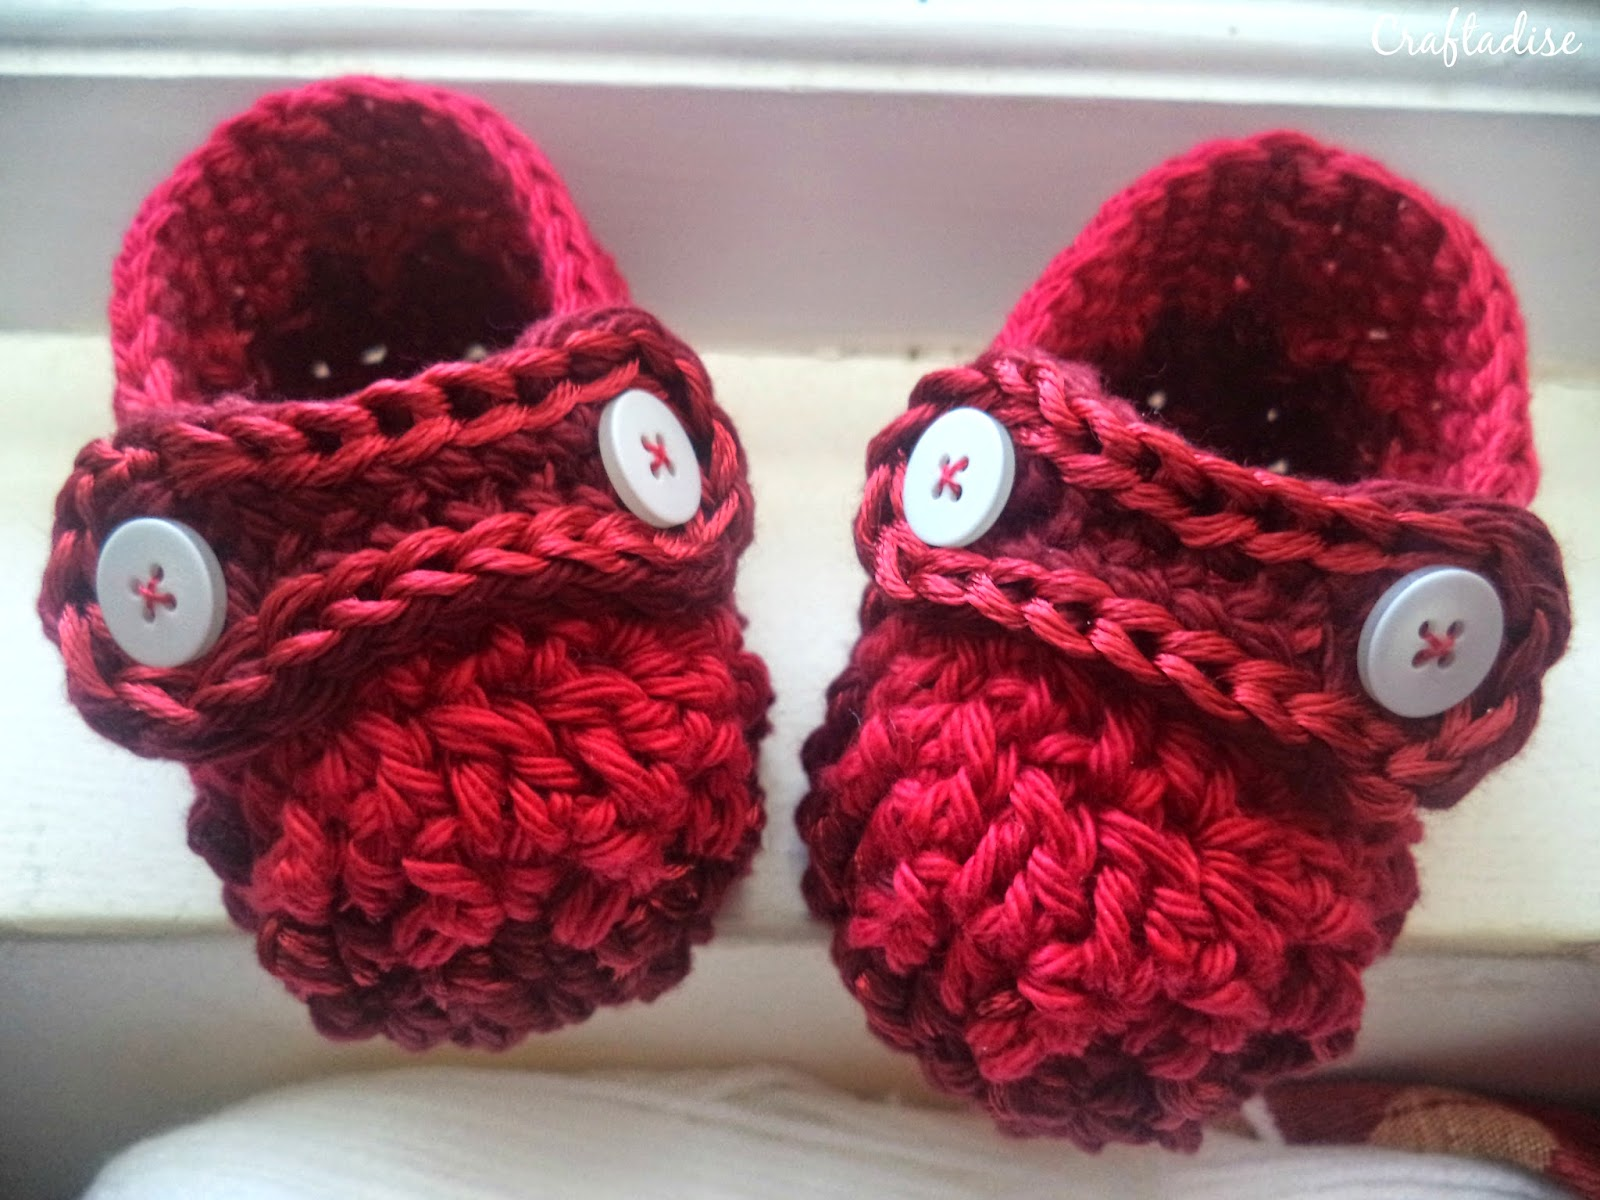 Free Crochet Pattern: Crochet Ribbed Baby Booties with Button Strap